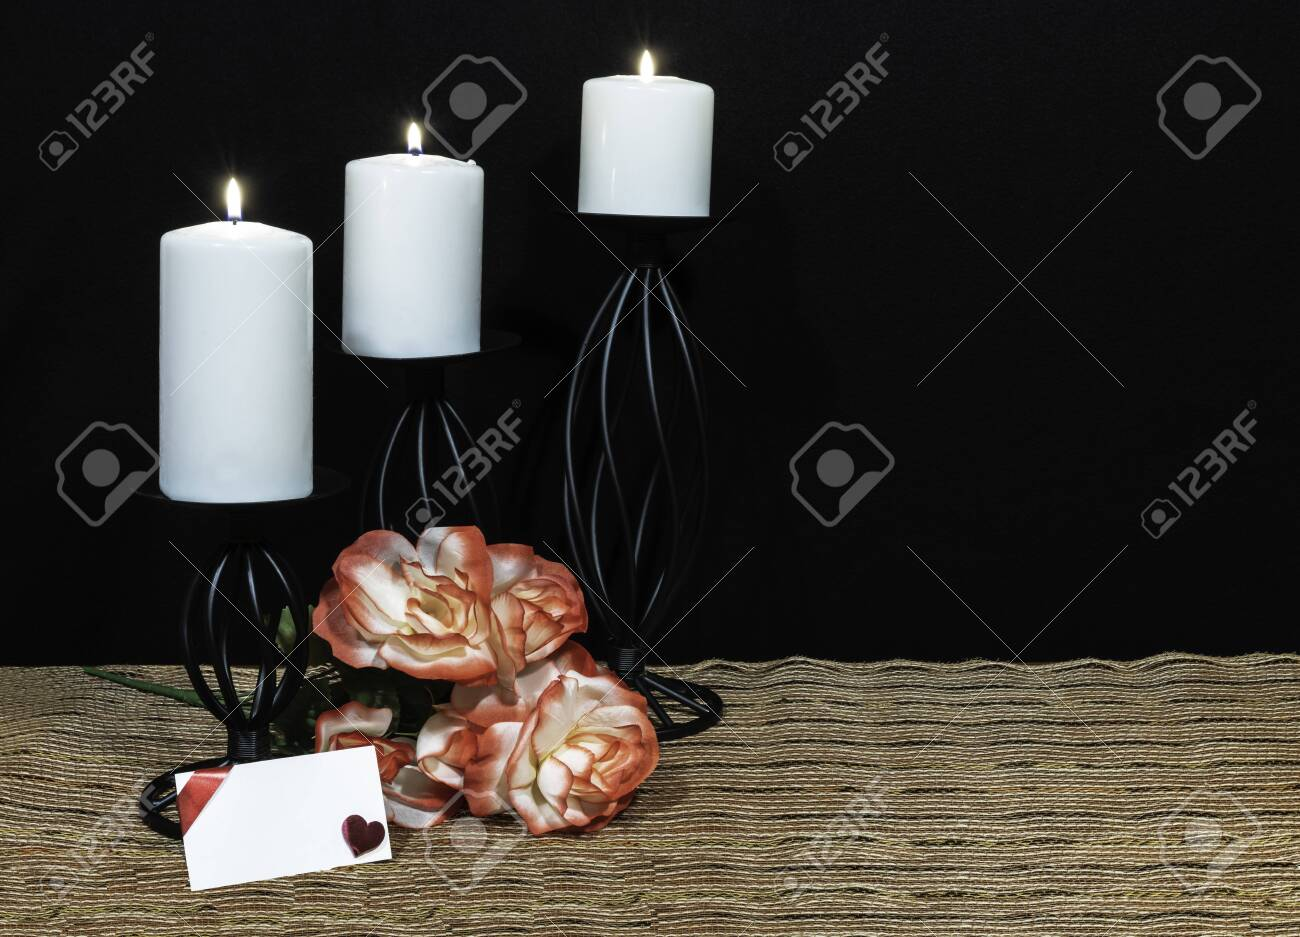 Beautiful Orange And White Roses White Candle Perched On Black Stock Photo Picture And Royalty Free Image Image 115951112